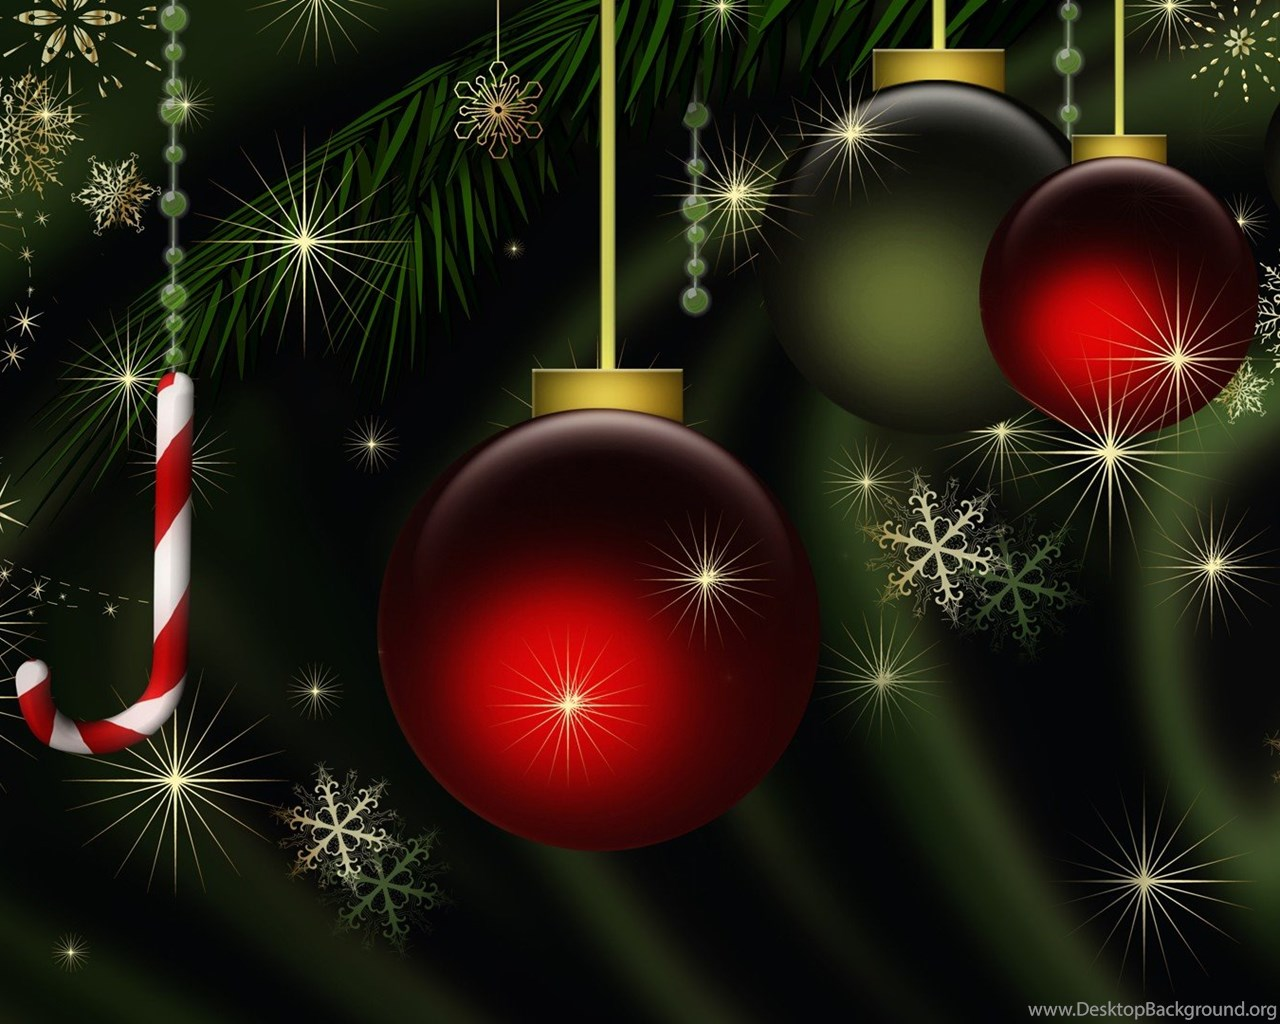 Dark Green Christmas, 1920x1080 HD Wallpapers And FREE ...